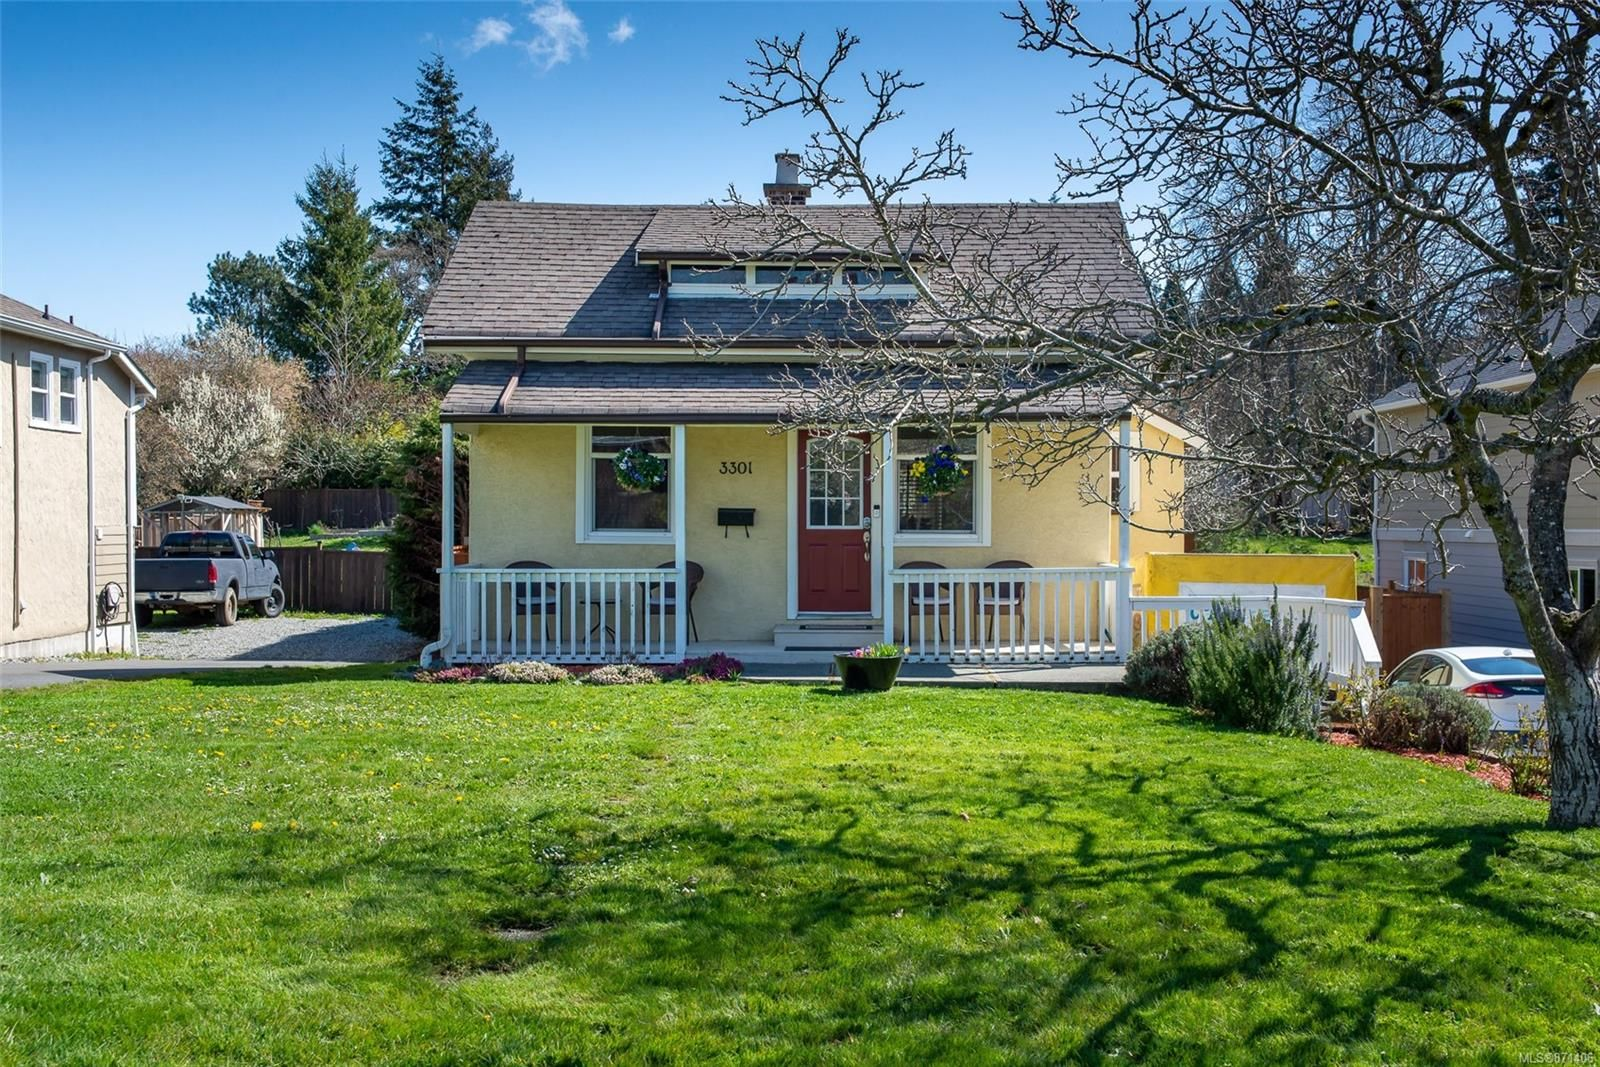 Main Photo: 3301 Linwood Ave in : SE Maplewood House for sale (Saanich East)  : MLS®# 871406